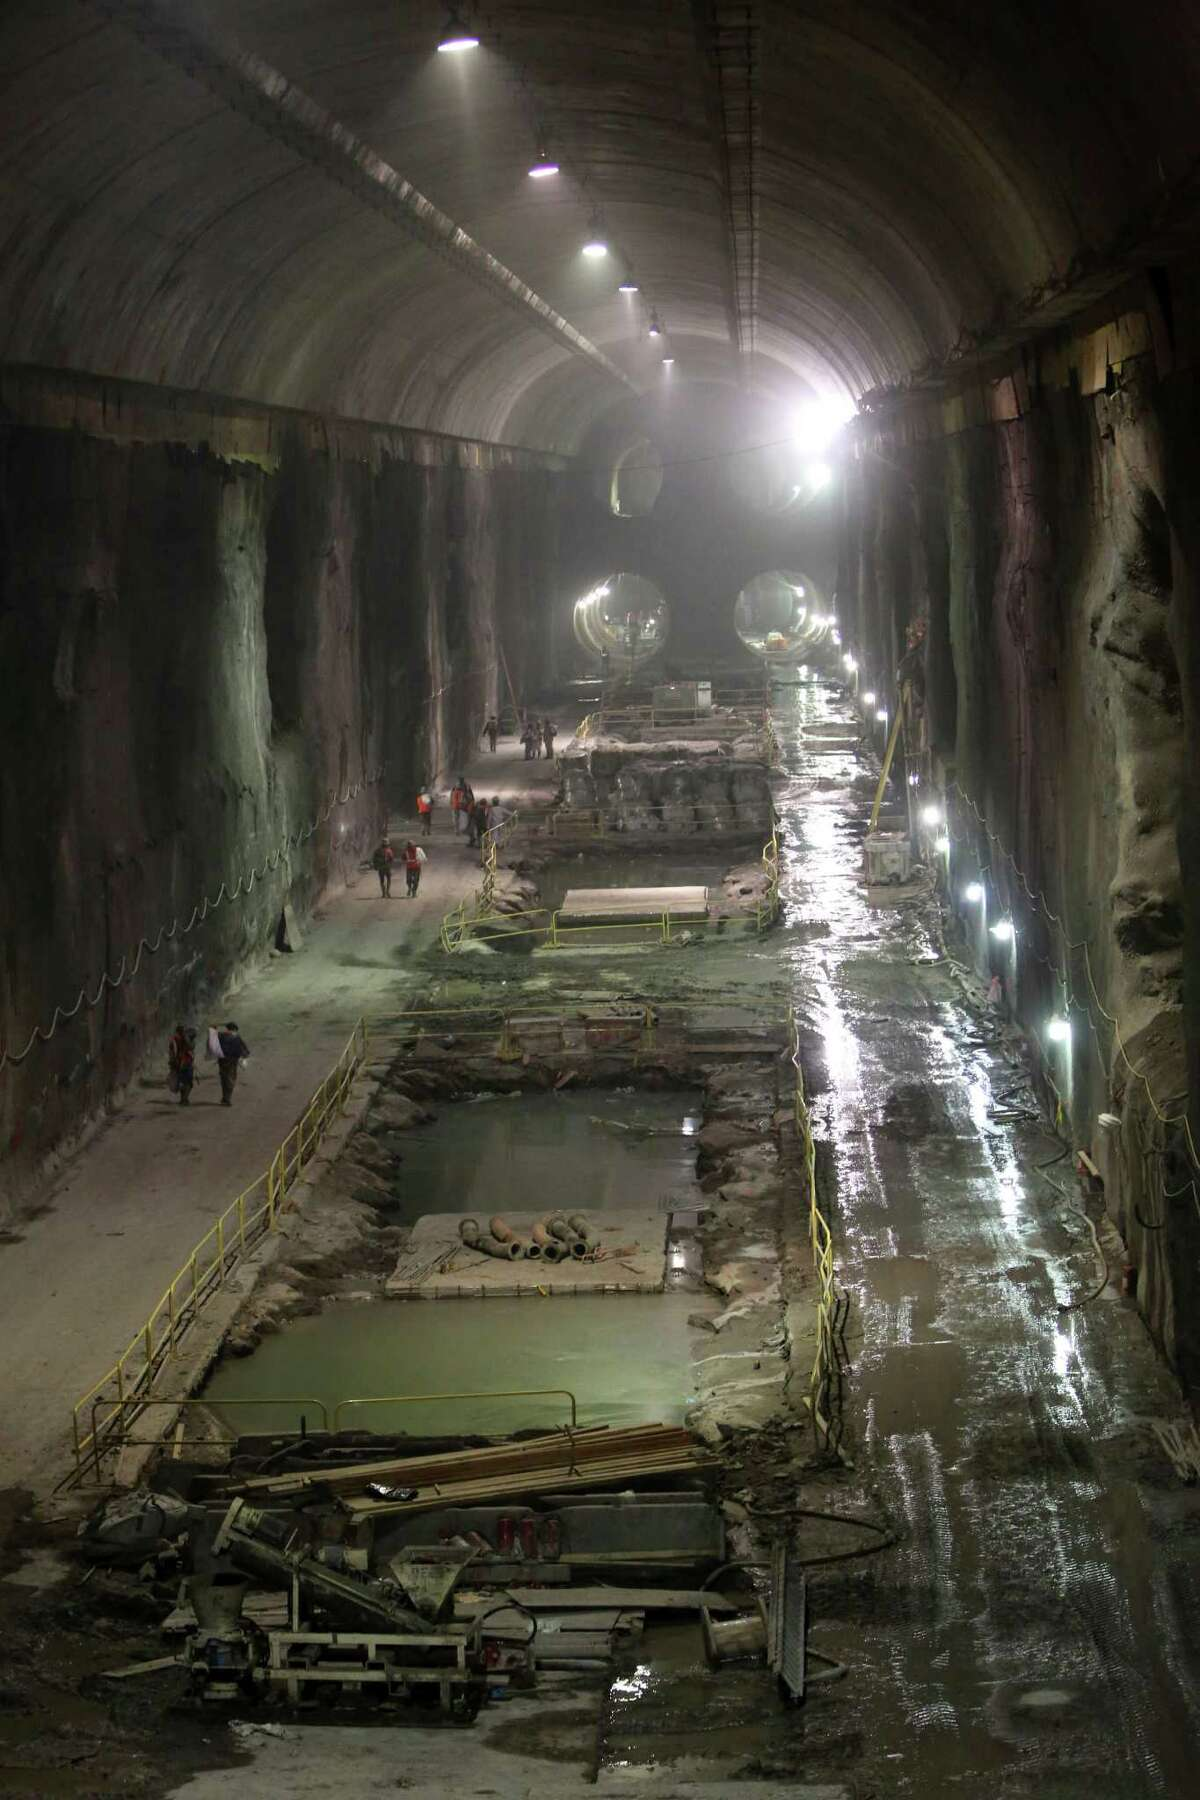 In this Tuesday, Jan. 29, 2013 photo, contractors work on the East Side Access project beneath midtown Manhattan, in New York. The East Side Access is one of three bold projects under New York that will expand what's already the nation's biggest mass-transit system by 2019.